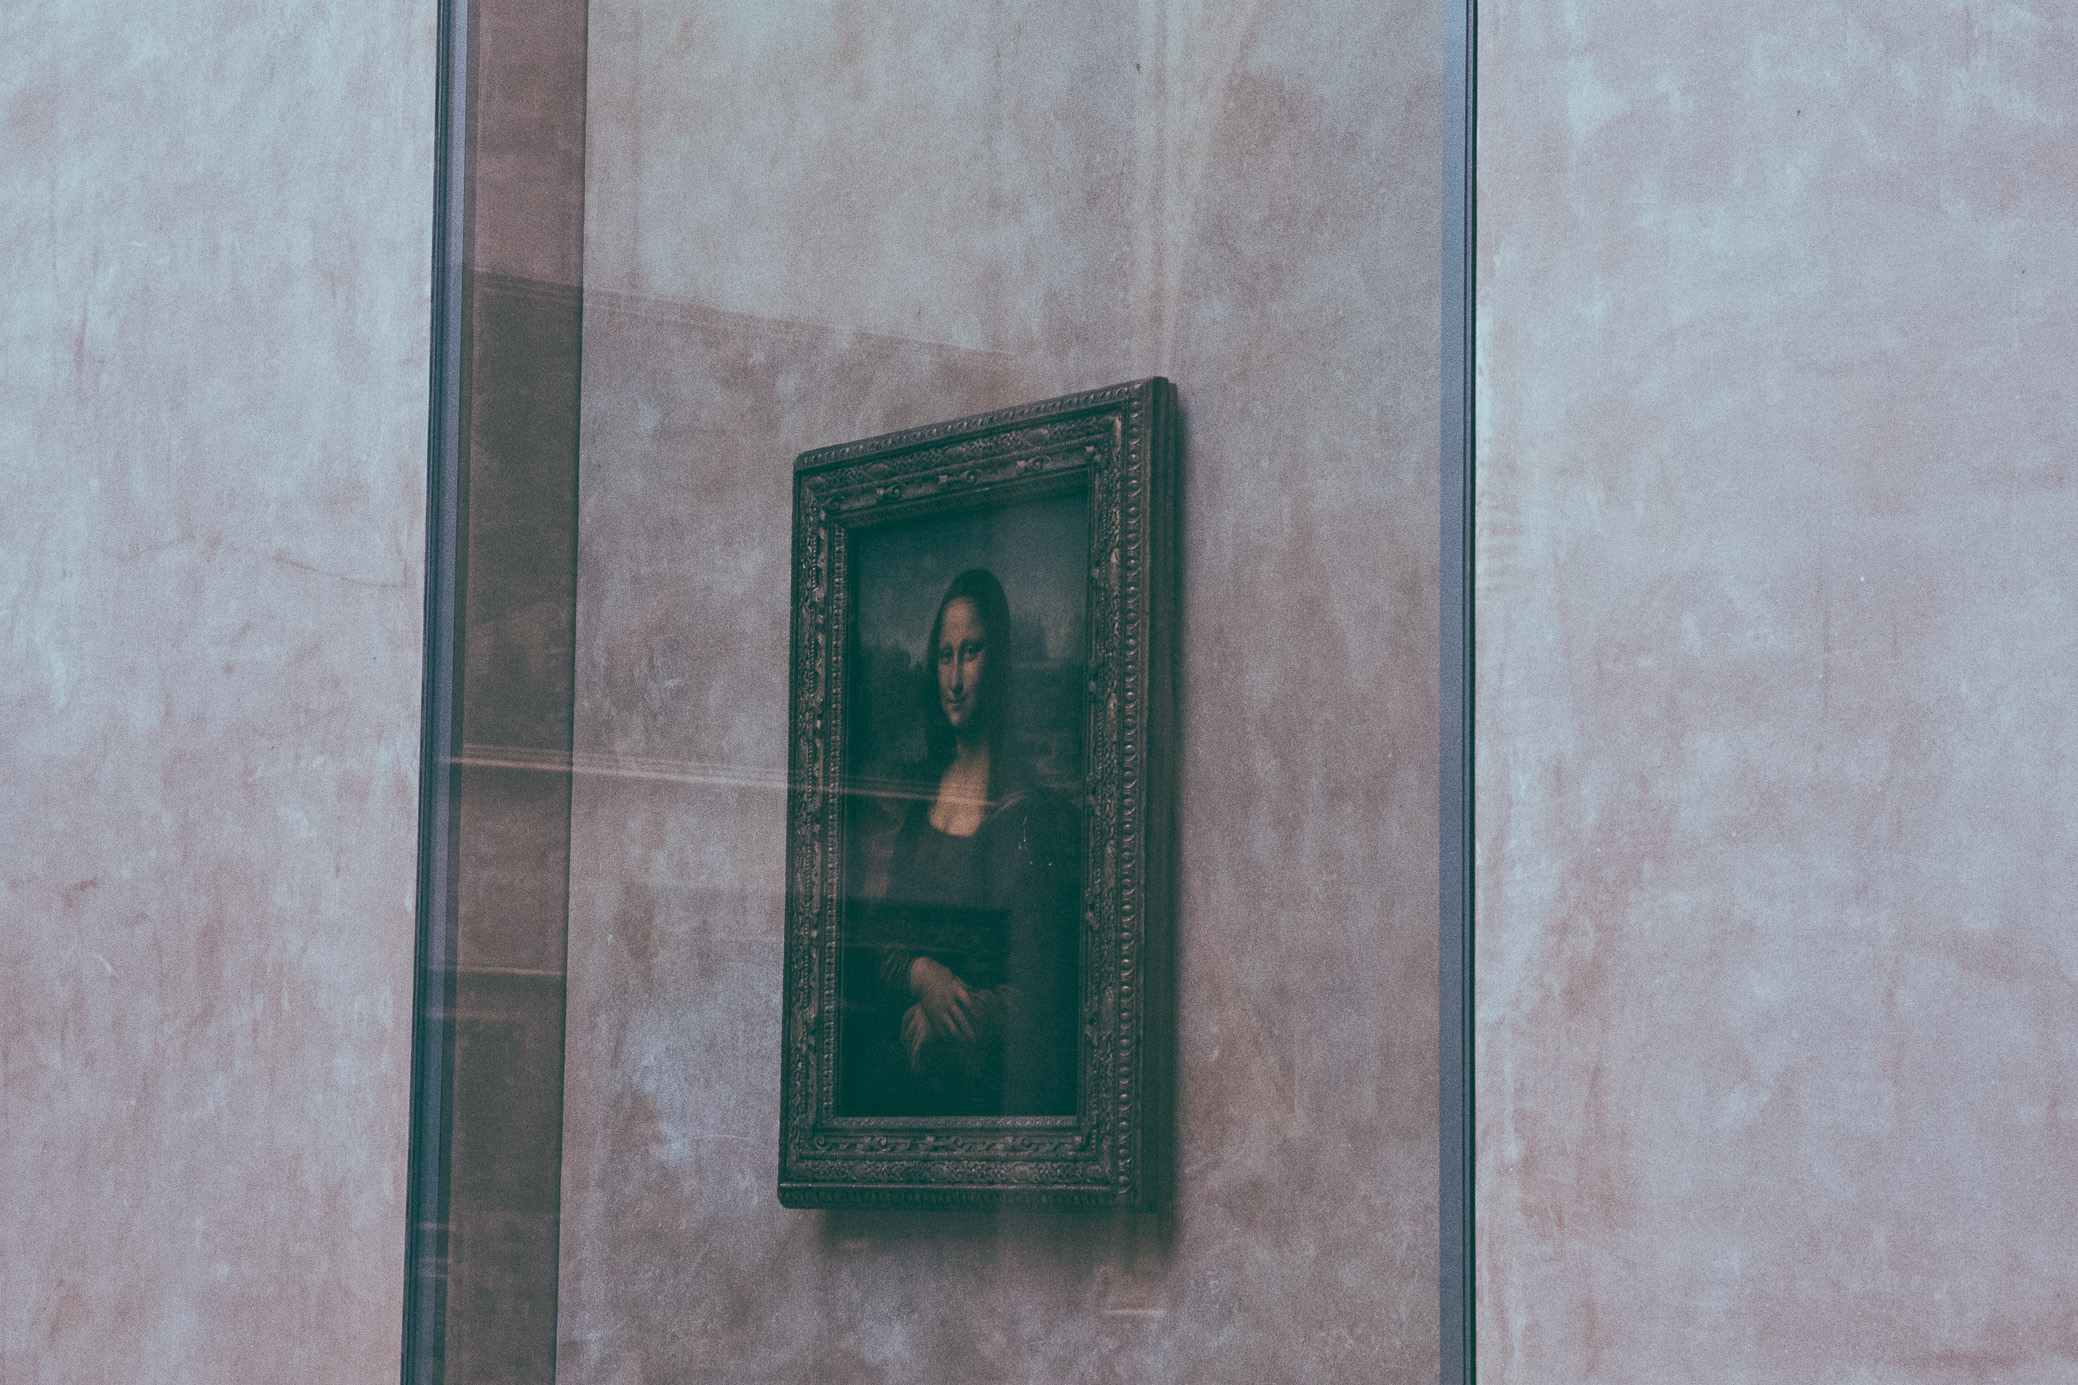 The Mona Lisa | The Louvre | Paris, France | December 9th, 2018 | (Photo by David A. Smith / DSmithScenes)